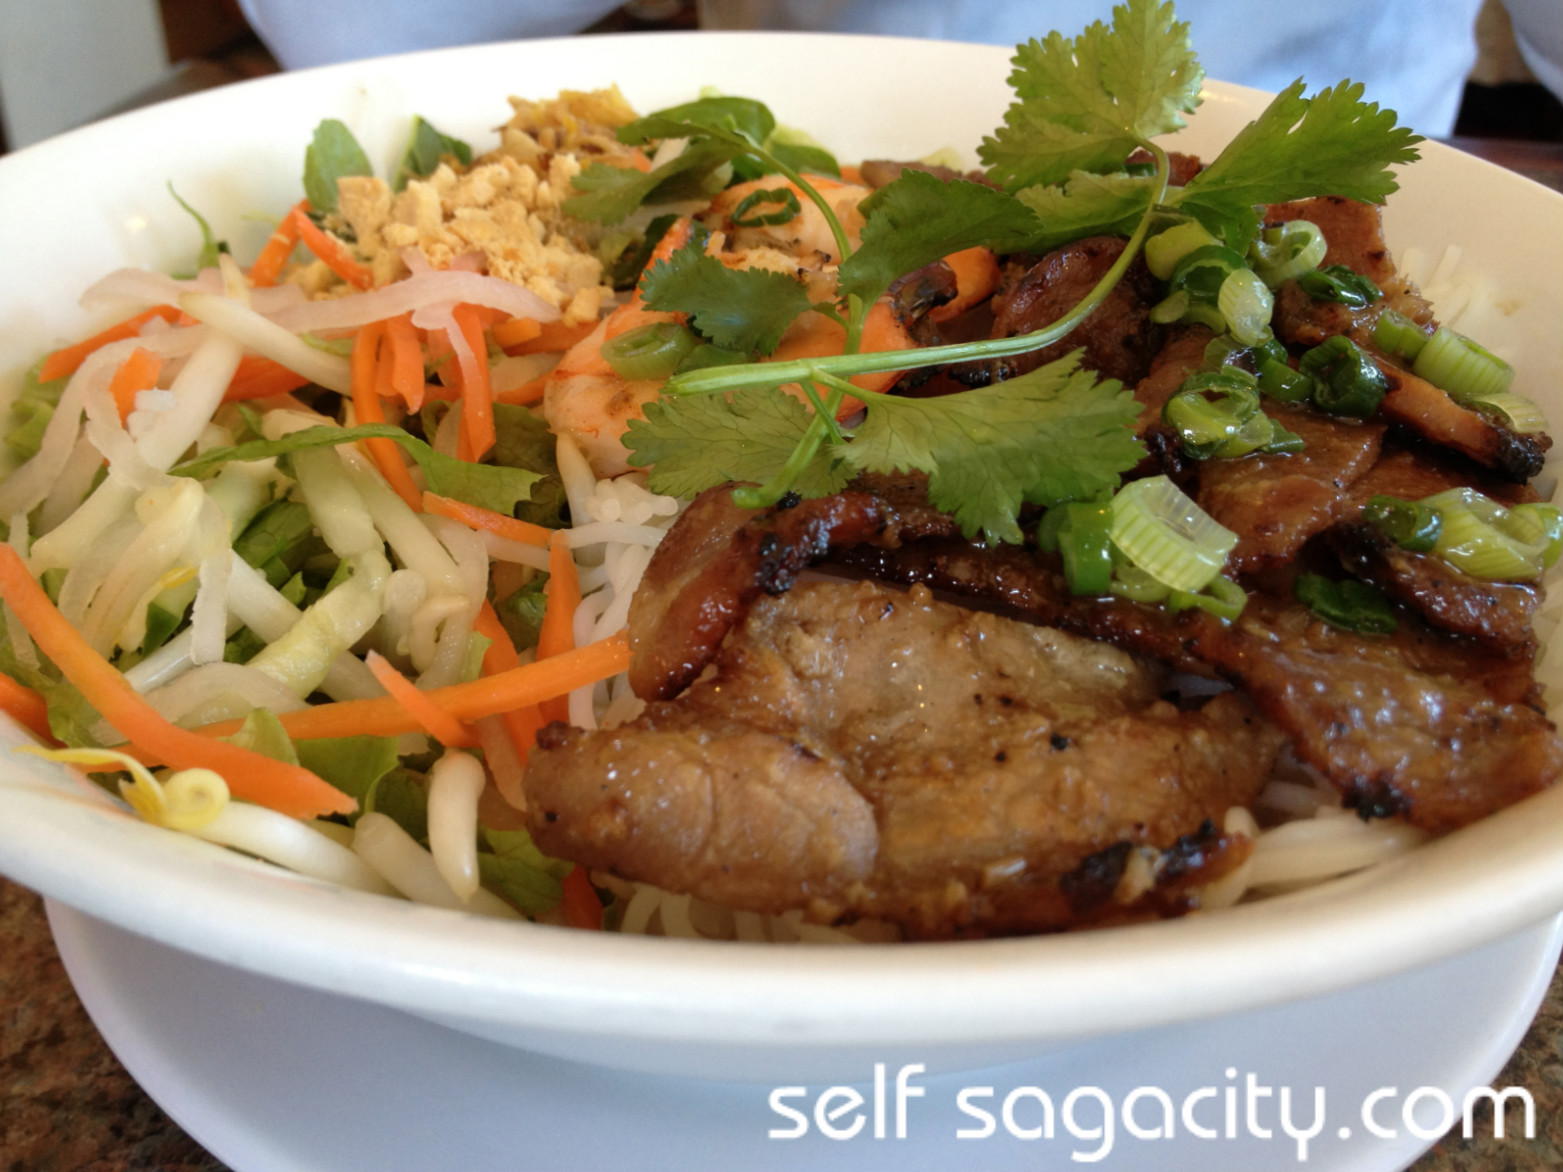 Bun Tom Thit Nuong Grilled Shrimp & Pork Vermicelli